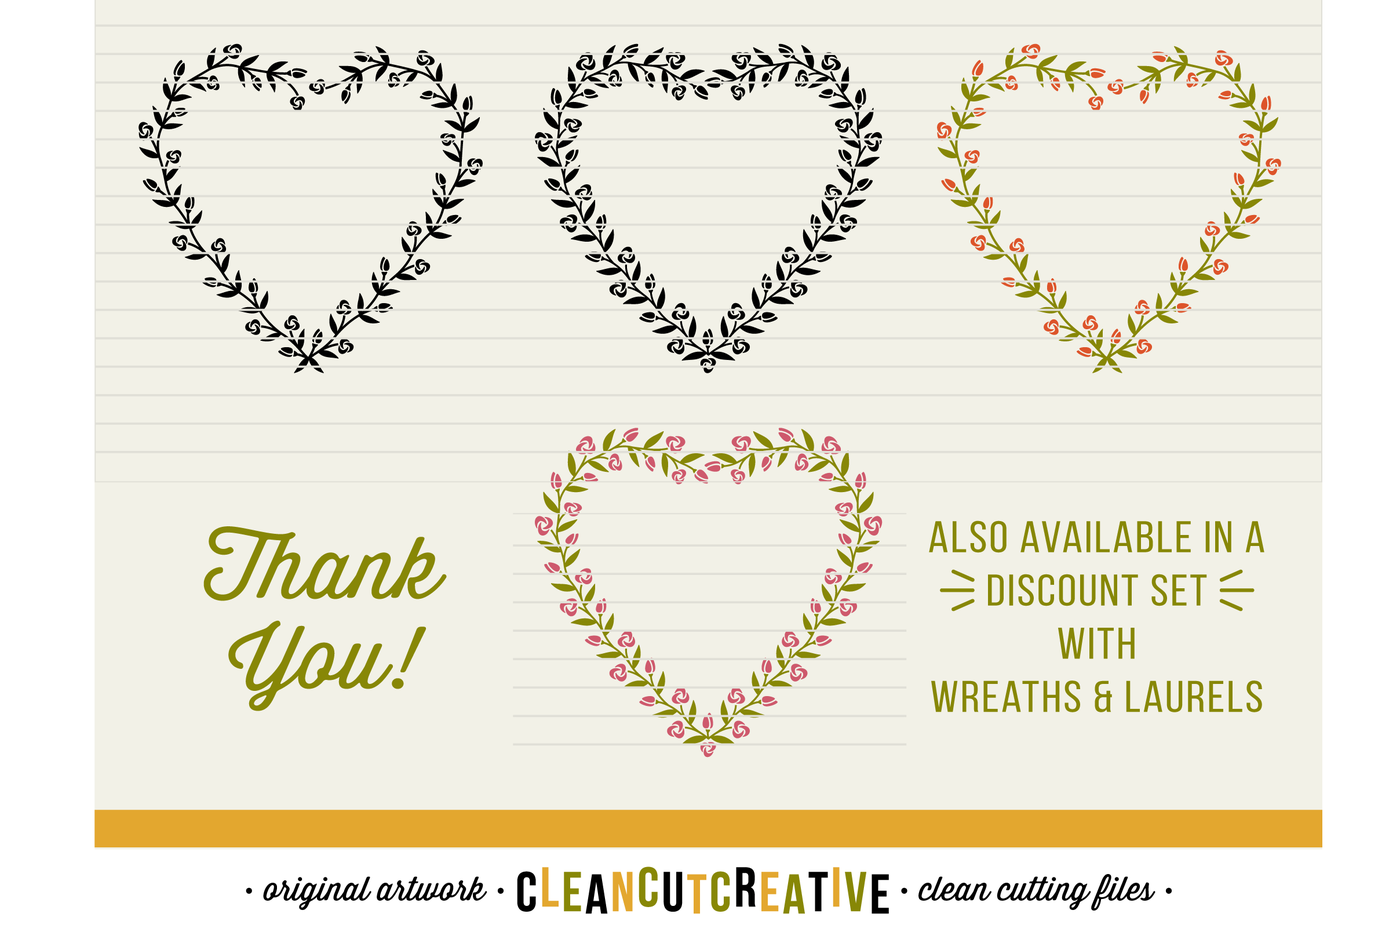 Floral Mega Bundle Svg Wreaths Laurels And Hearts Leaf Frames Svg Dxf Eps Png Cricut Silhouette Clean Cutting Files By Cleancutcreative Thehungryjpeg Com